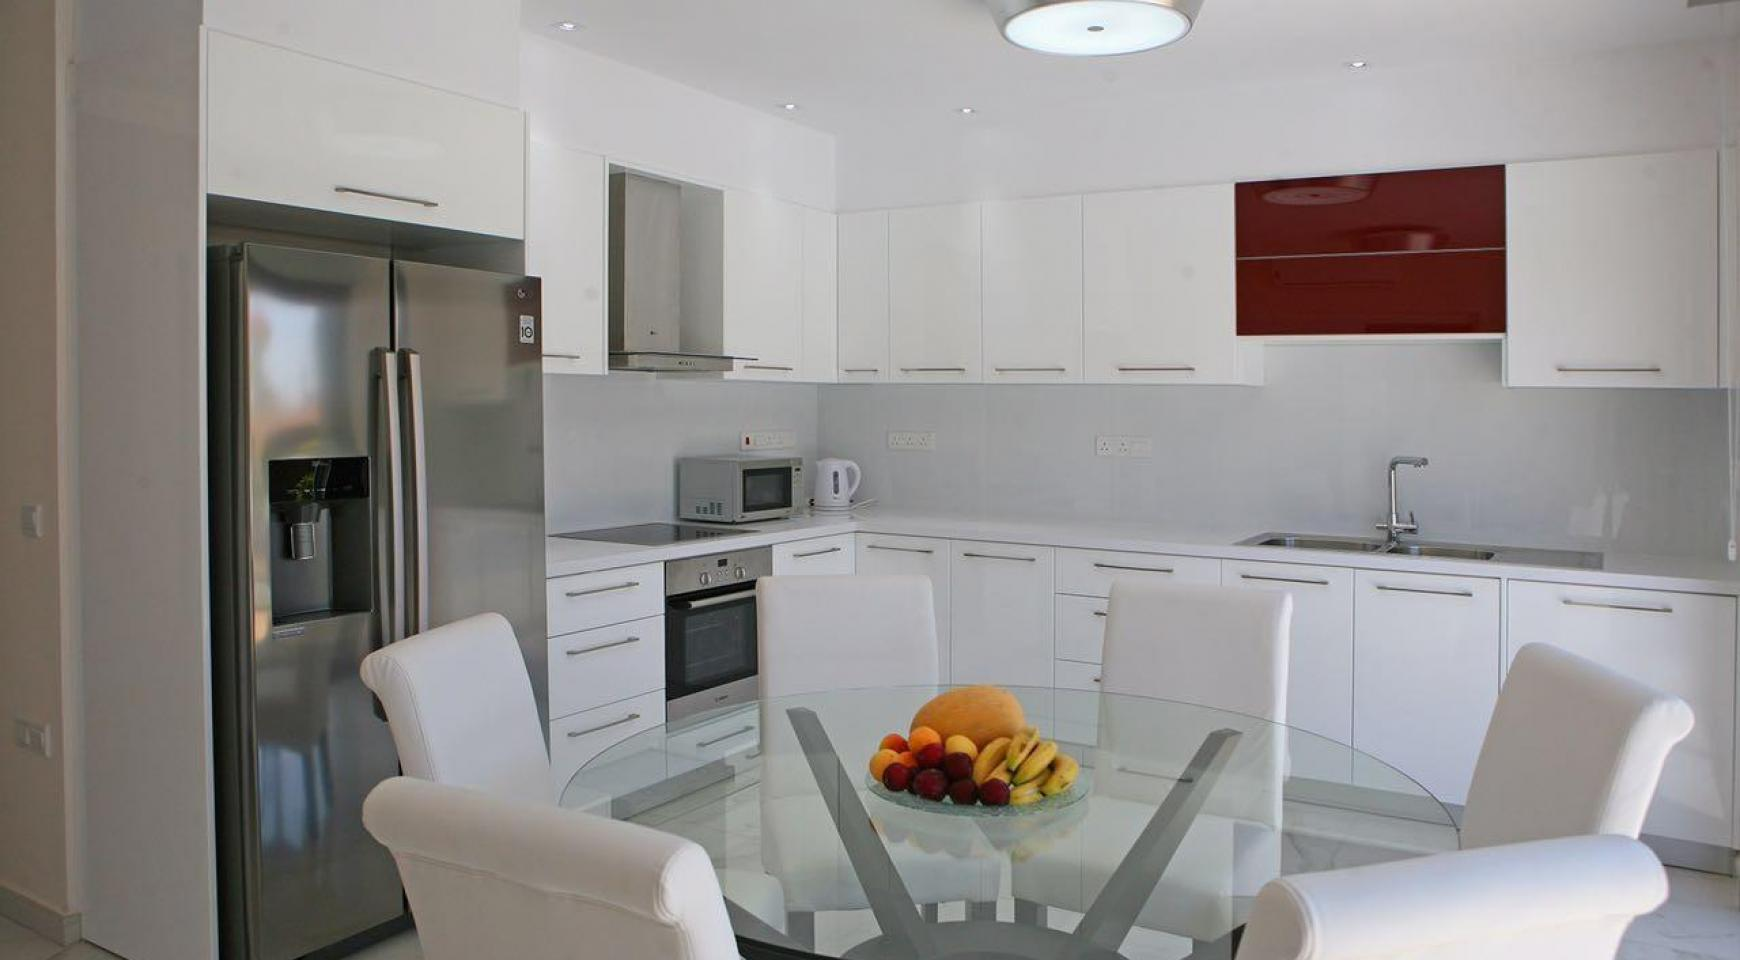 New Contemporary 3 Bedroom House in Central Location - 5